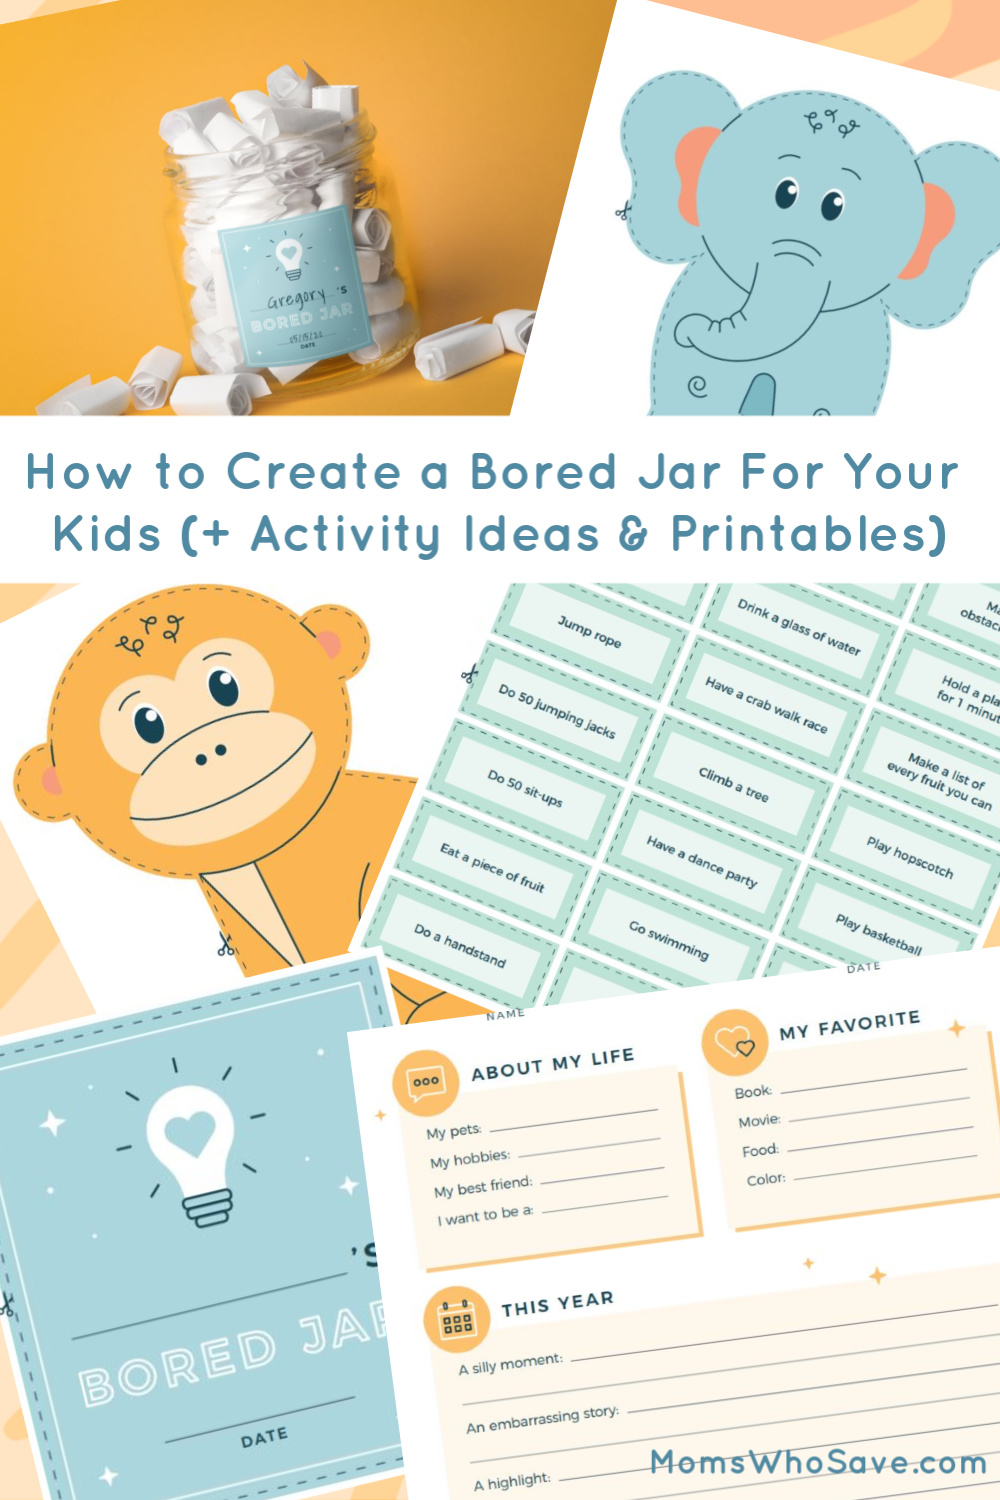 How To Create A Bored Jar For Your Kids Activity Ideas Printables Momswhosave Com